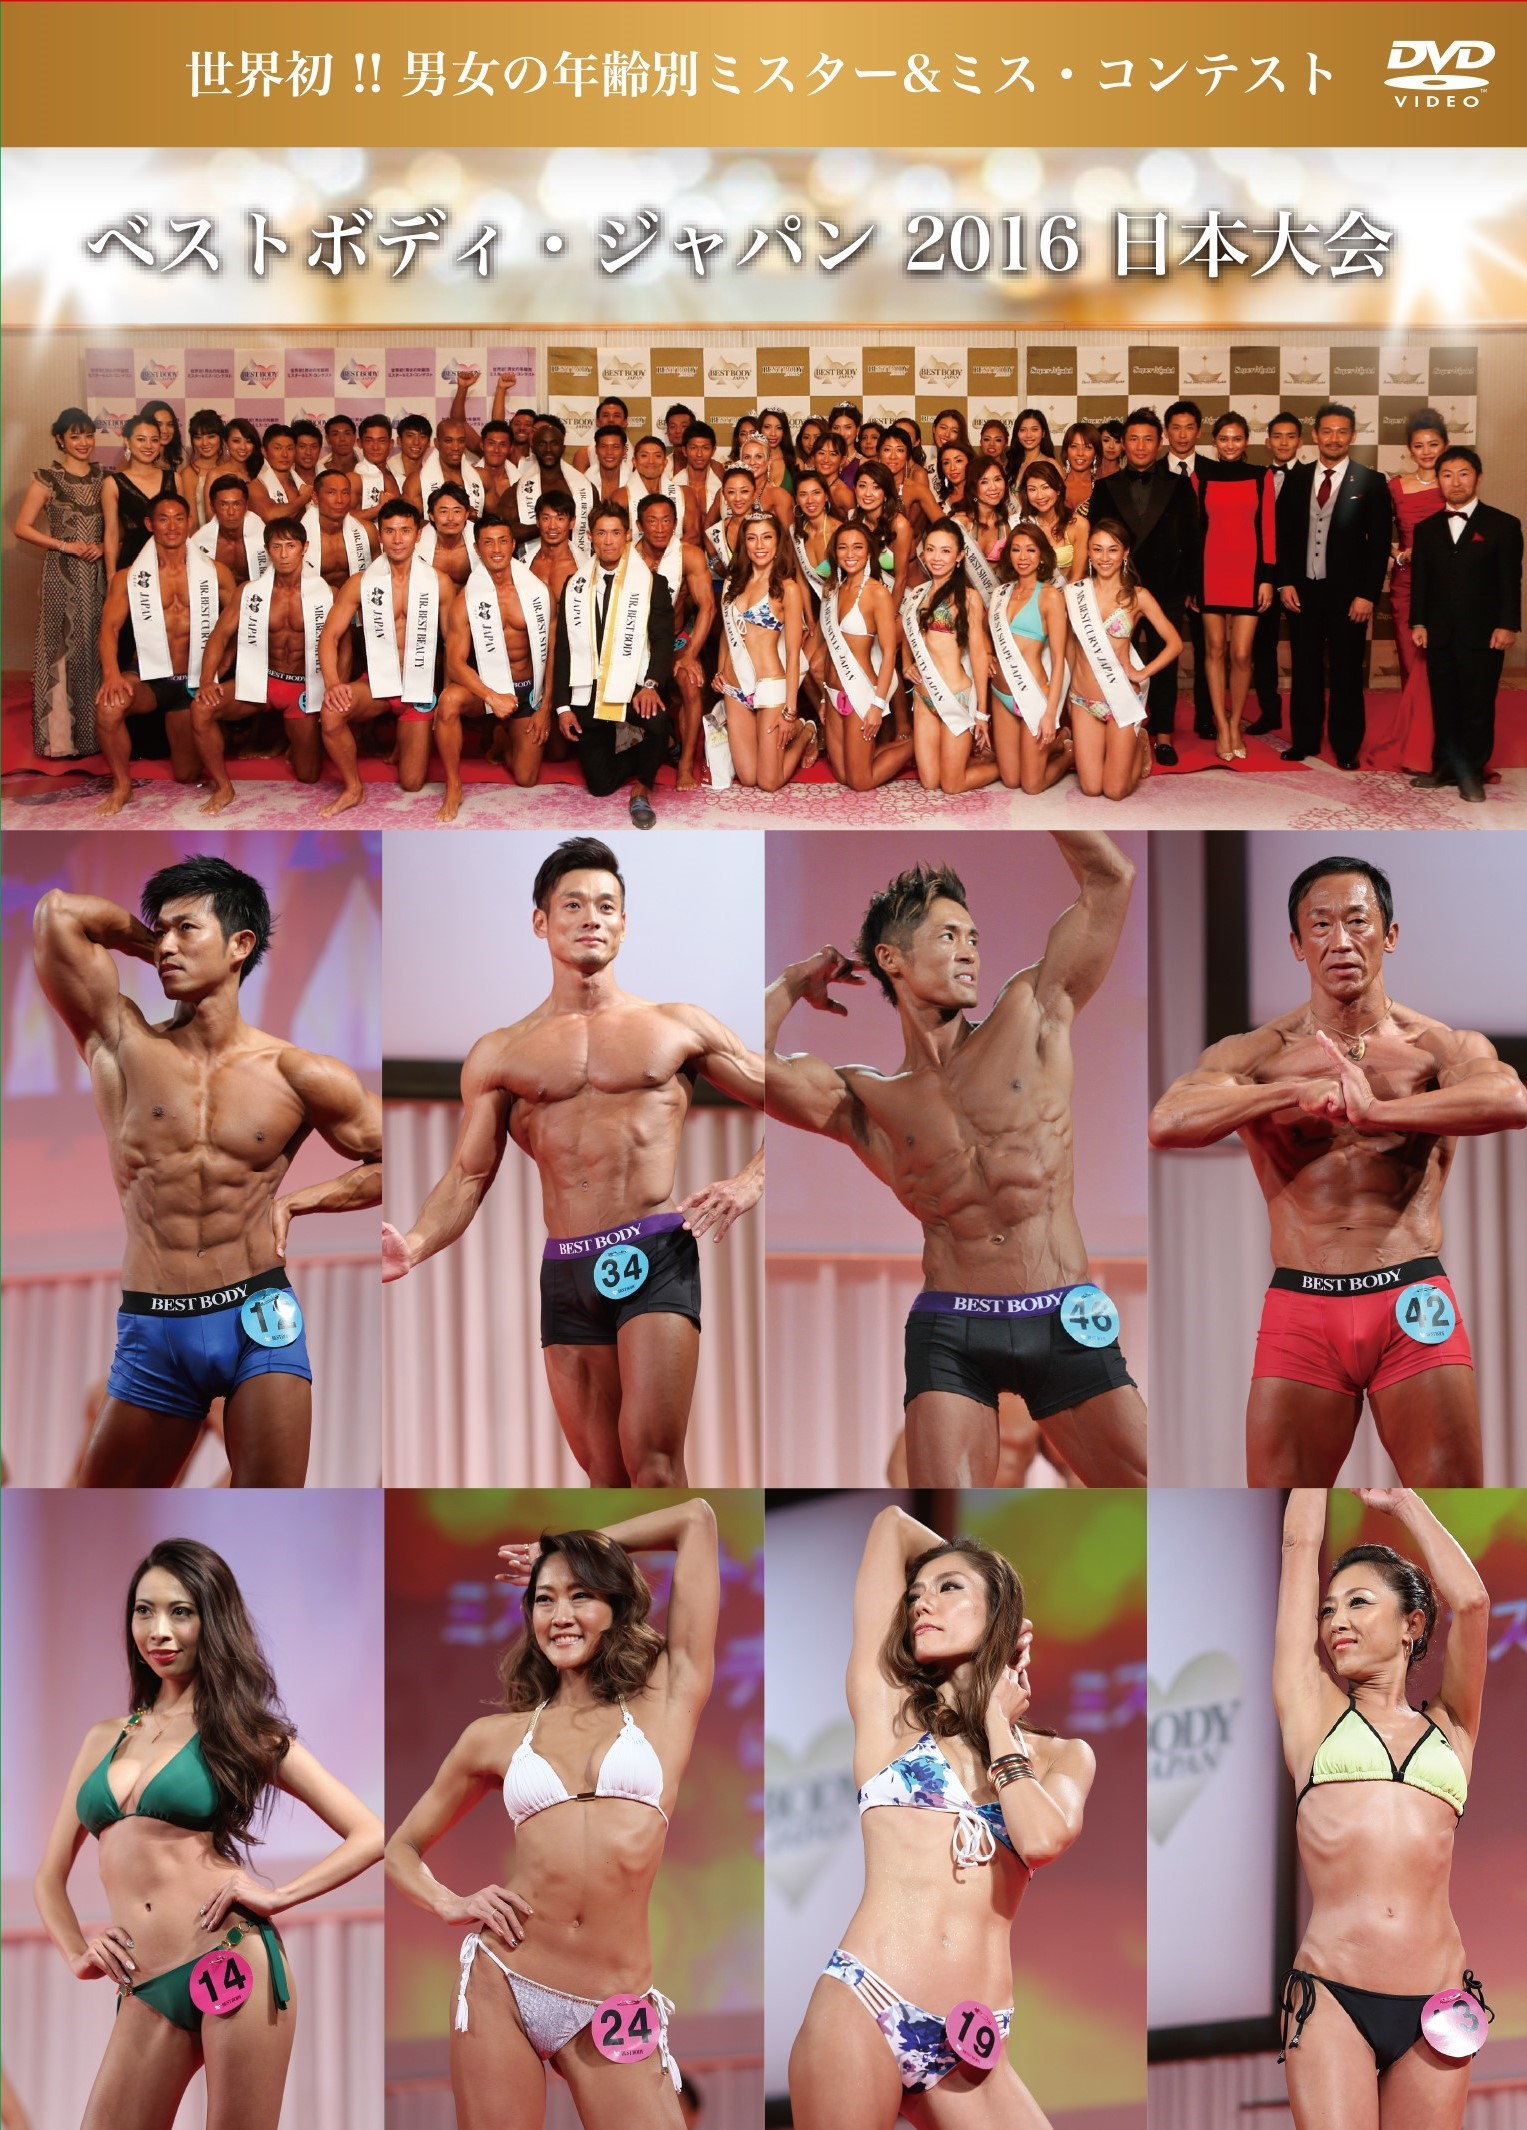 BEST BODY JAPAN 2016 DVD